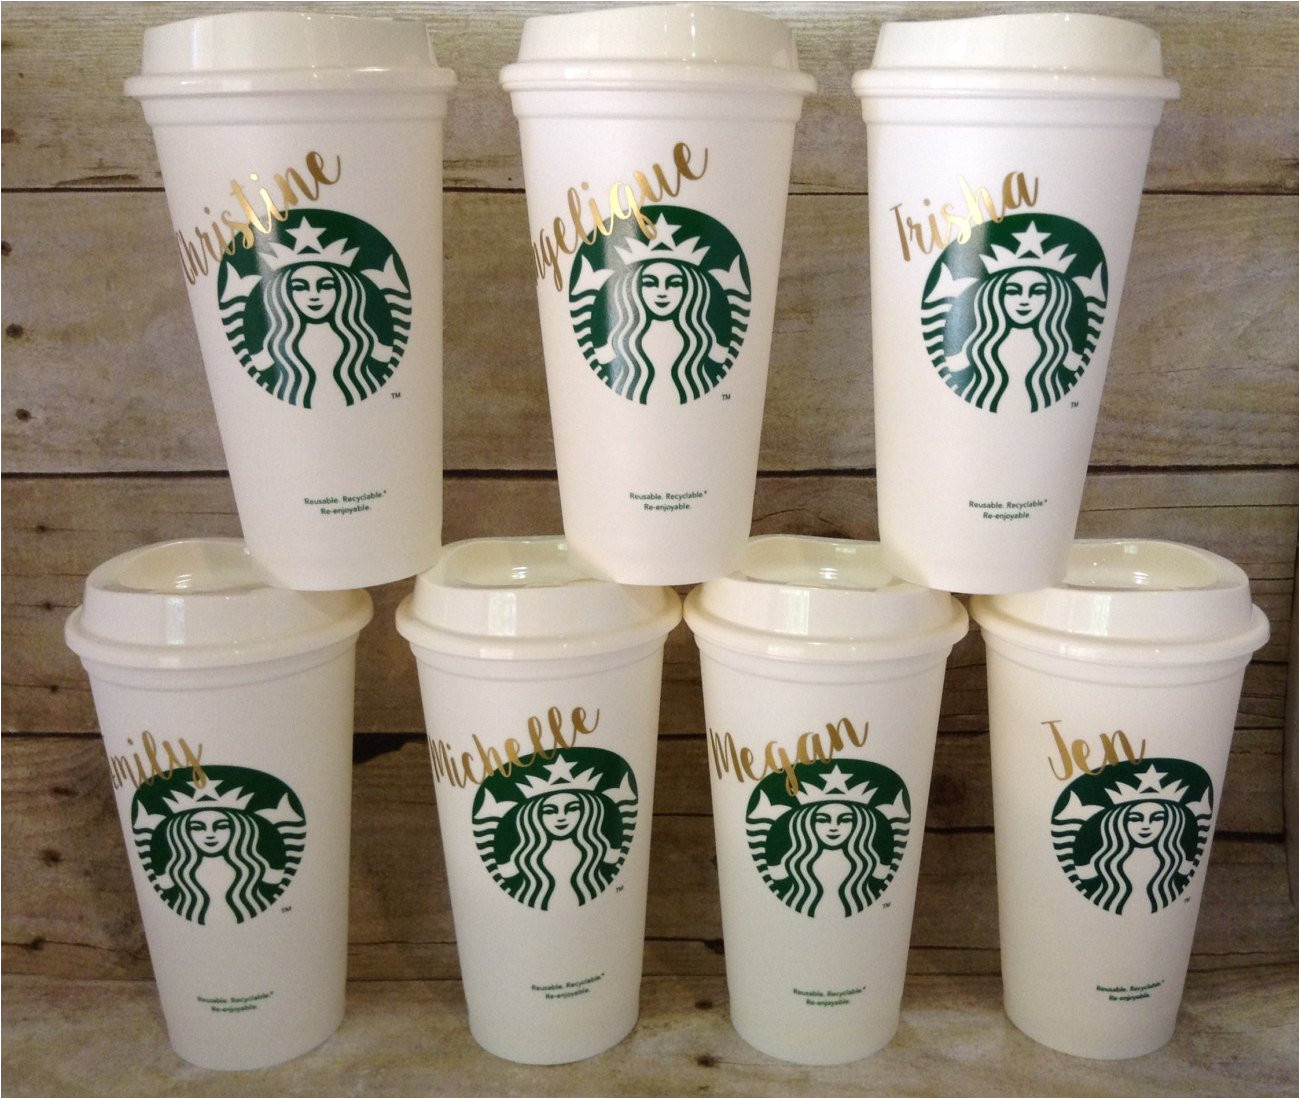 Starbucks Personalized Tumbler Template Starbucks Tumbler Personalized Starbucks Cup Gift by